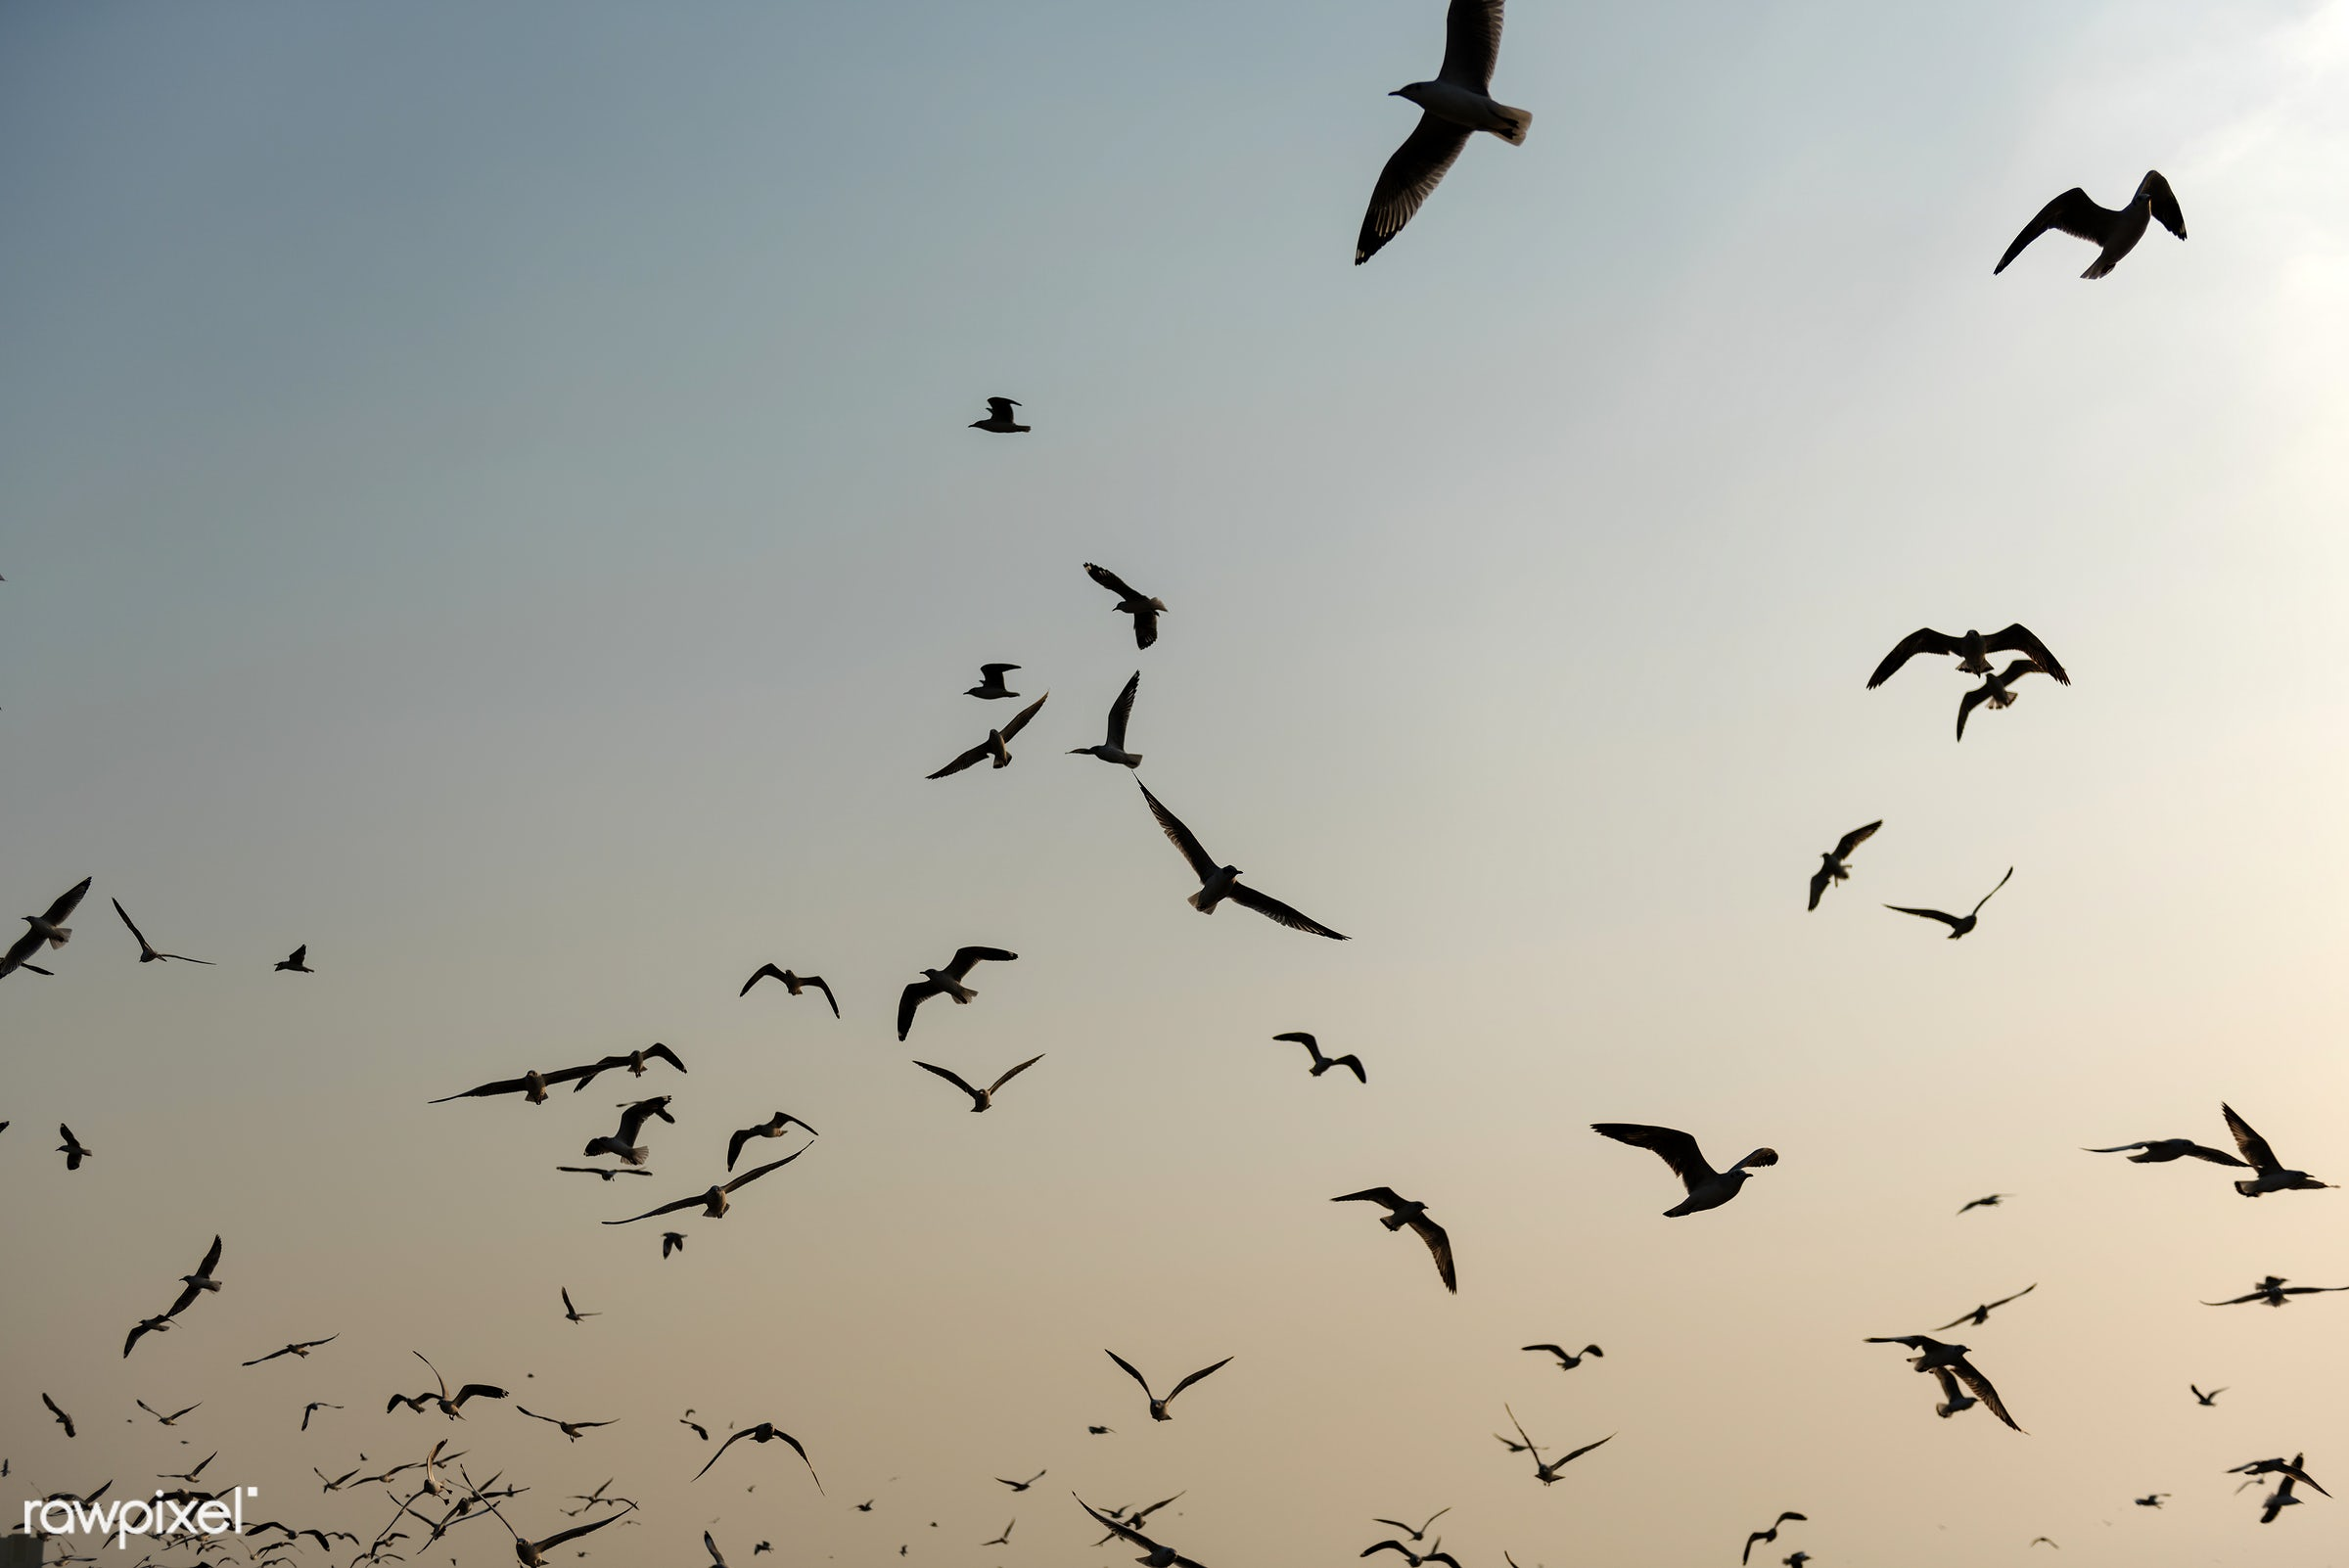 Flying seagulls in the sky - birds, sky, sunset, animal, flying, silhouette, flock, nature, outdoors, seagull